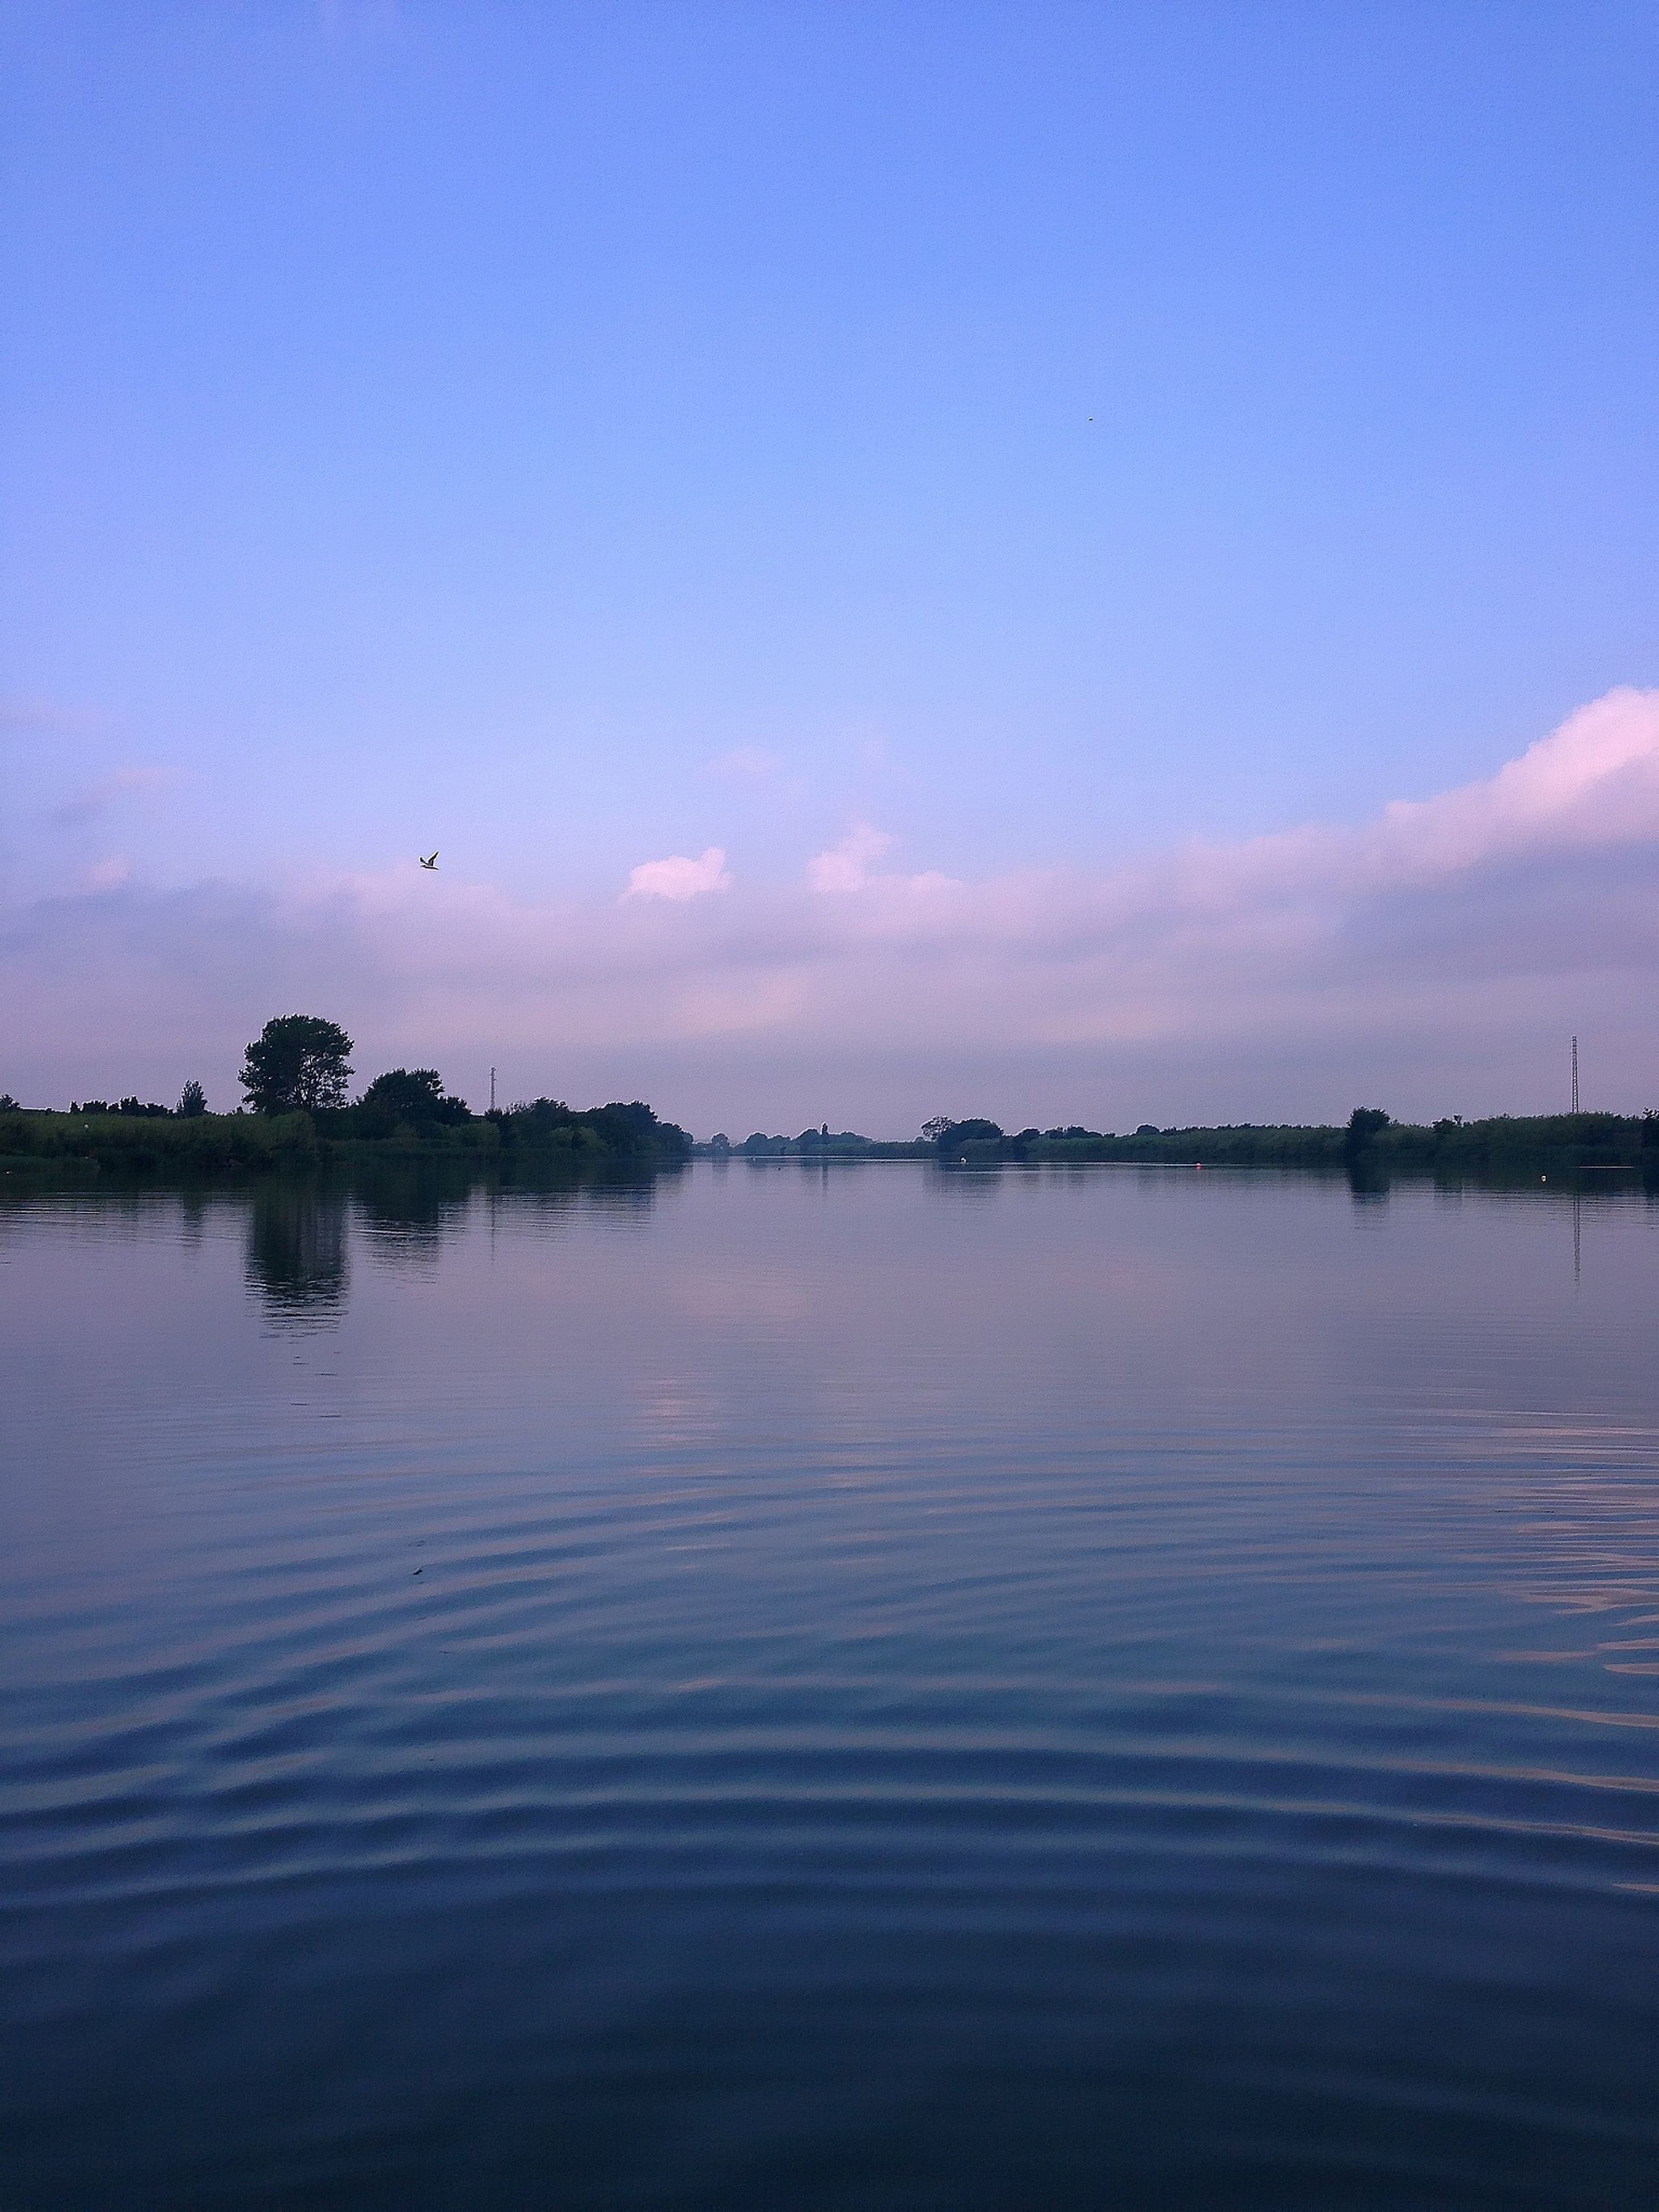 water, waterfront, tranquil scene, scenics, tranquility, sky, reflection, sunset, sea, blue, beauty in nature, rippled, nature, idyllic, lake, dusk, silhouette, calm, copy space, outdoors